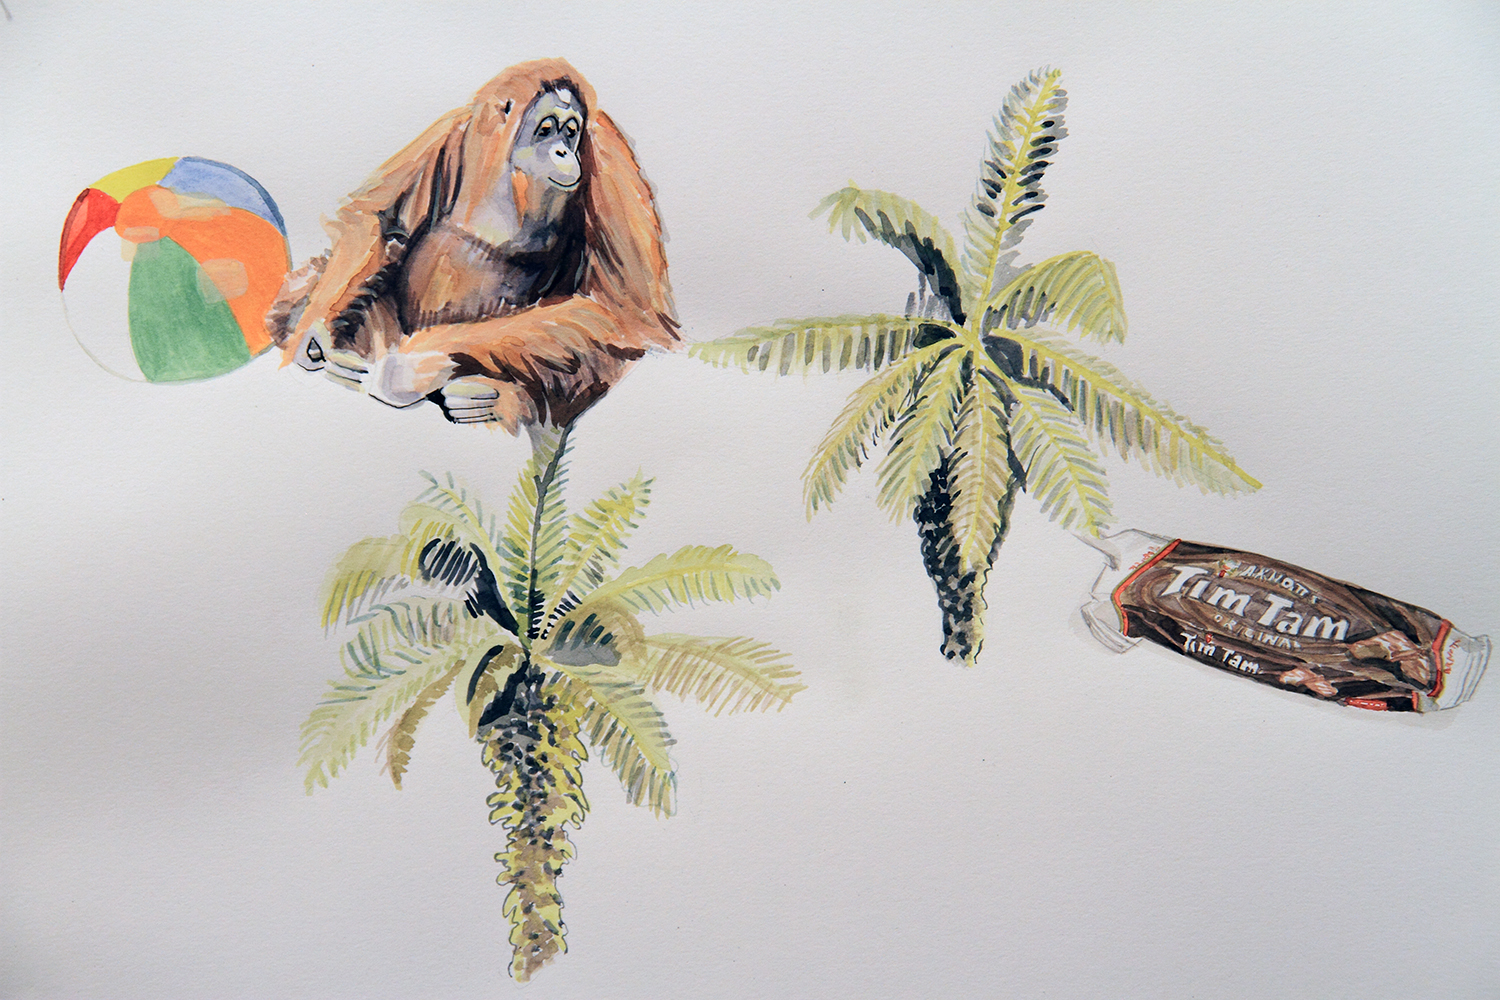 Plastic Temptation, 2010, Watercolour on paper, 29.7 x 42.0 cm, Photo: Michaela Gleave